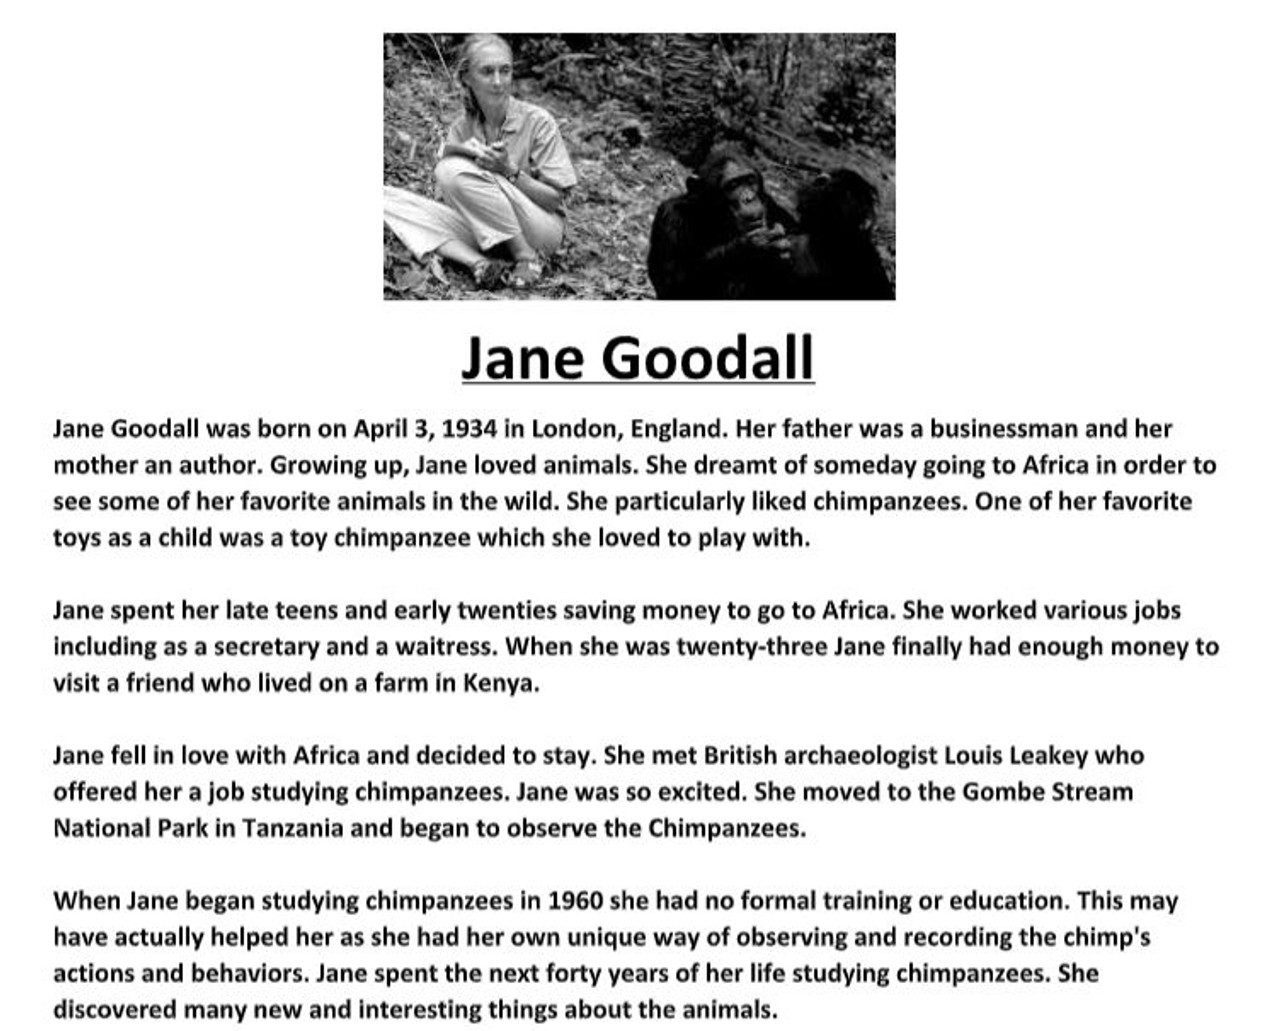 hight resolution of Jane Goodall Biography Worksheet - Amped Up Learning